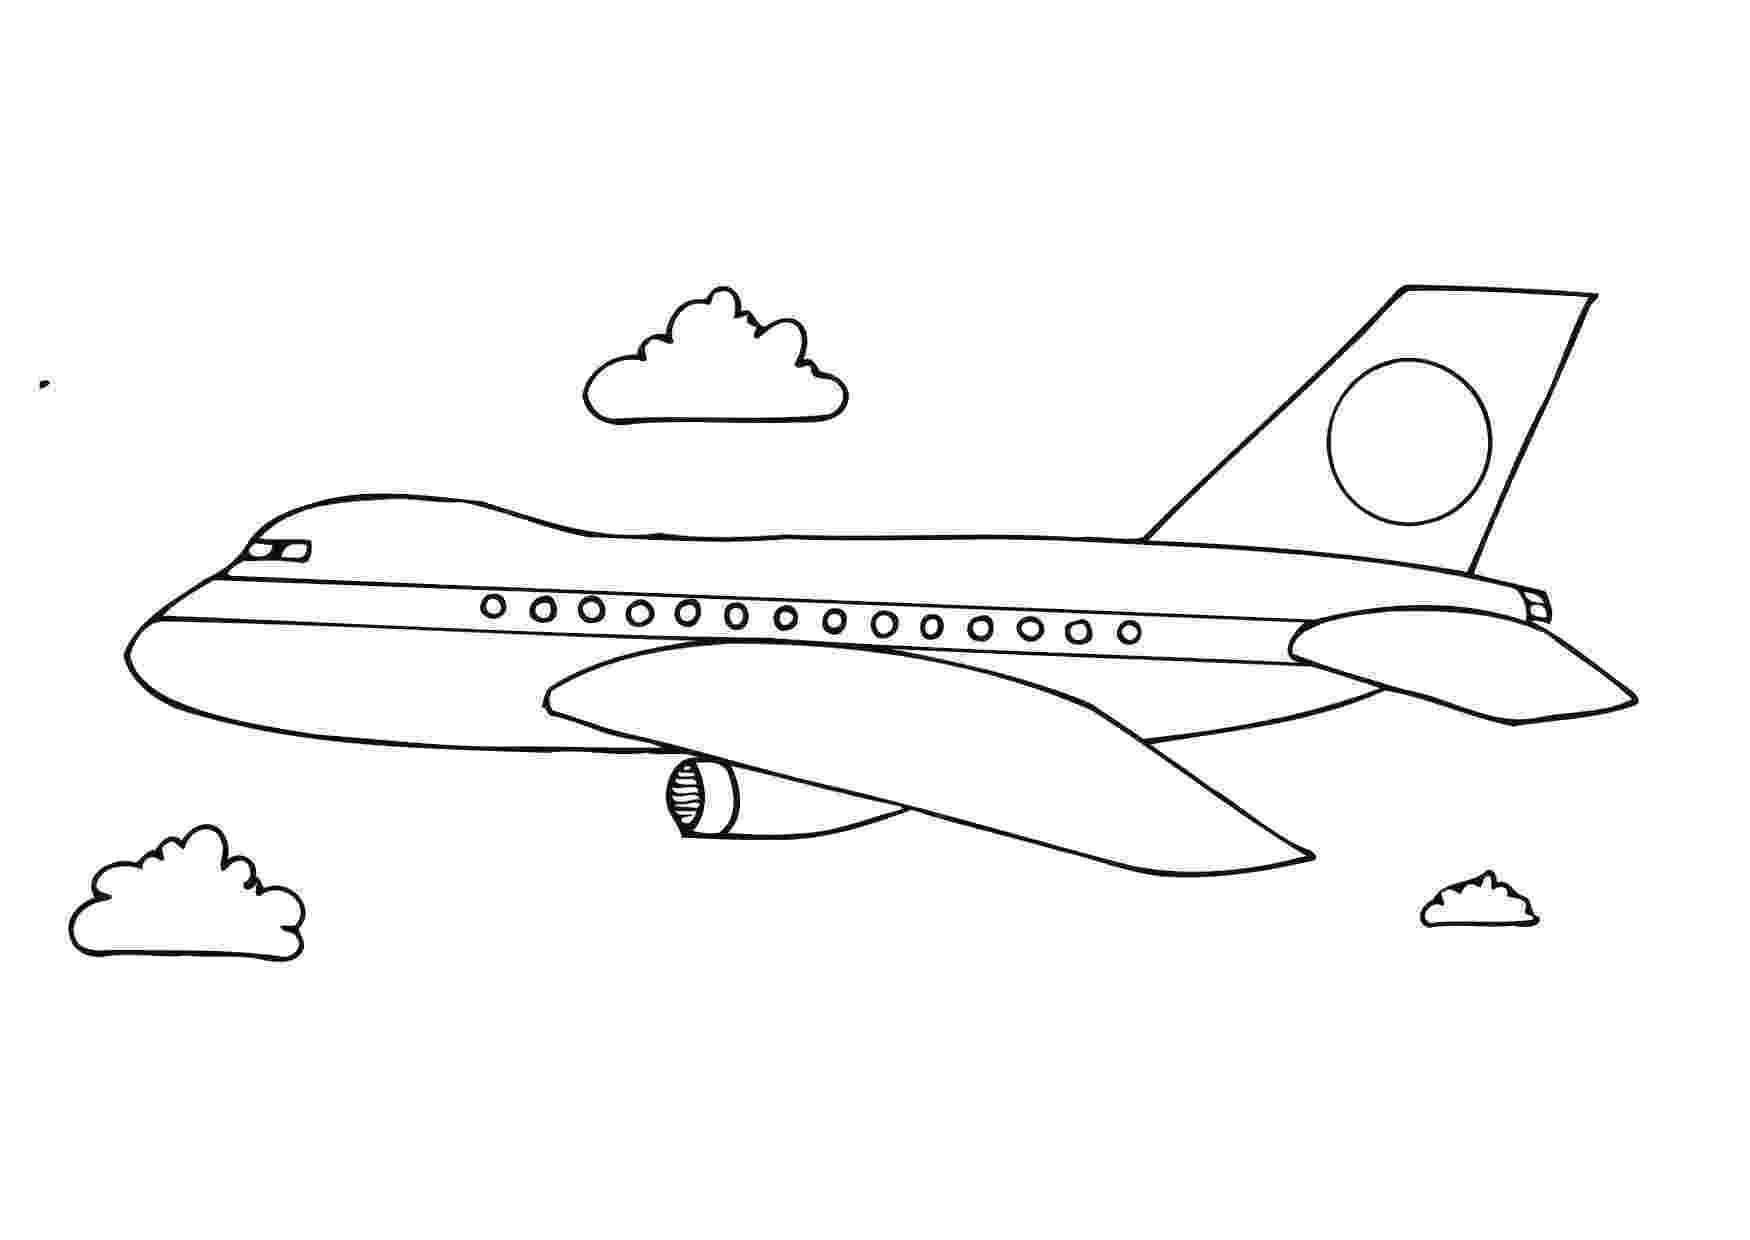 printable airplane coloring pages free printable airplane coloring pages for kids pages airplane printable coloring